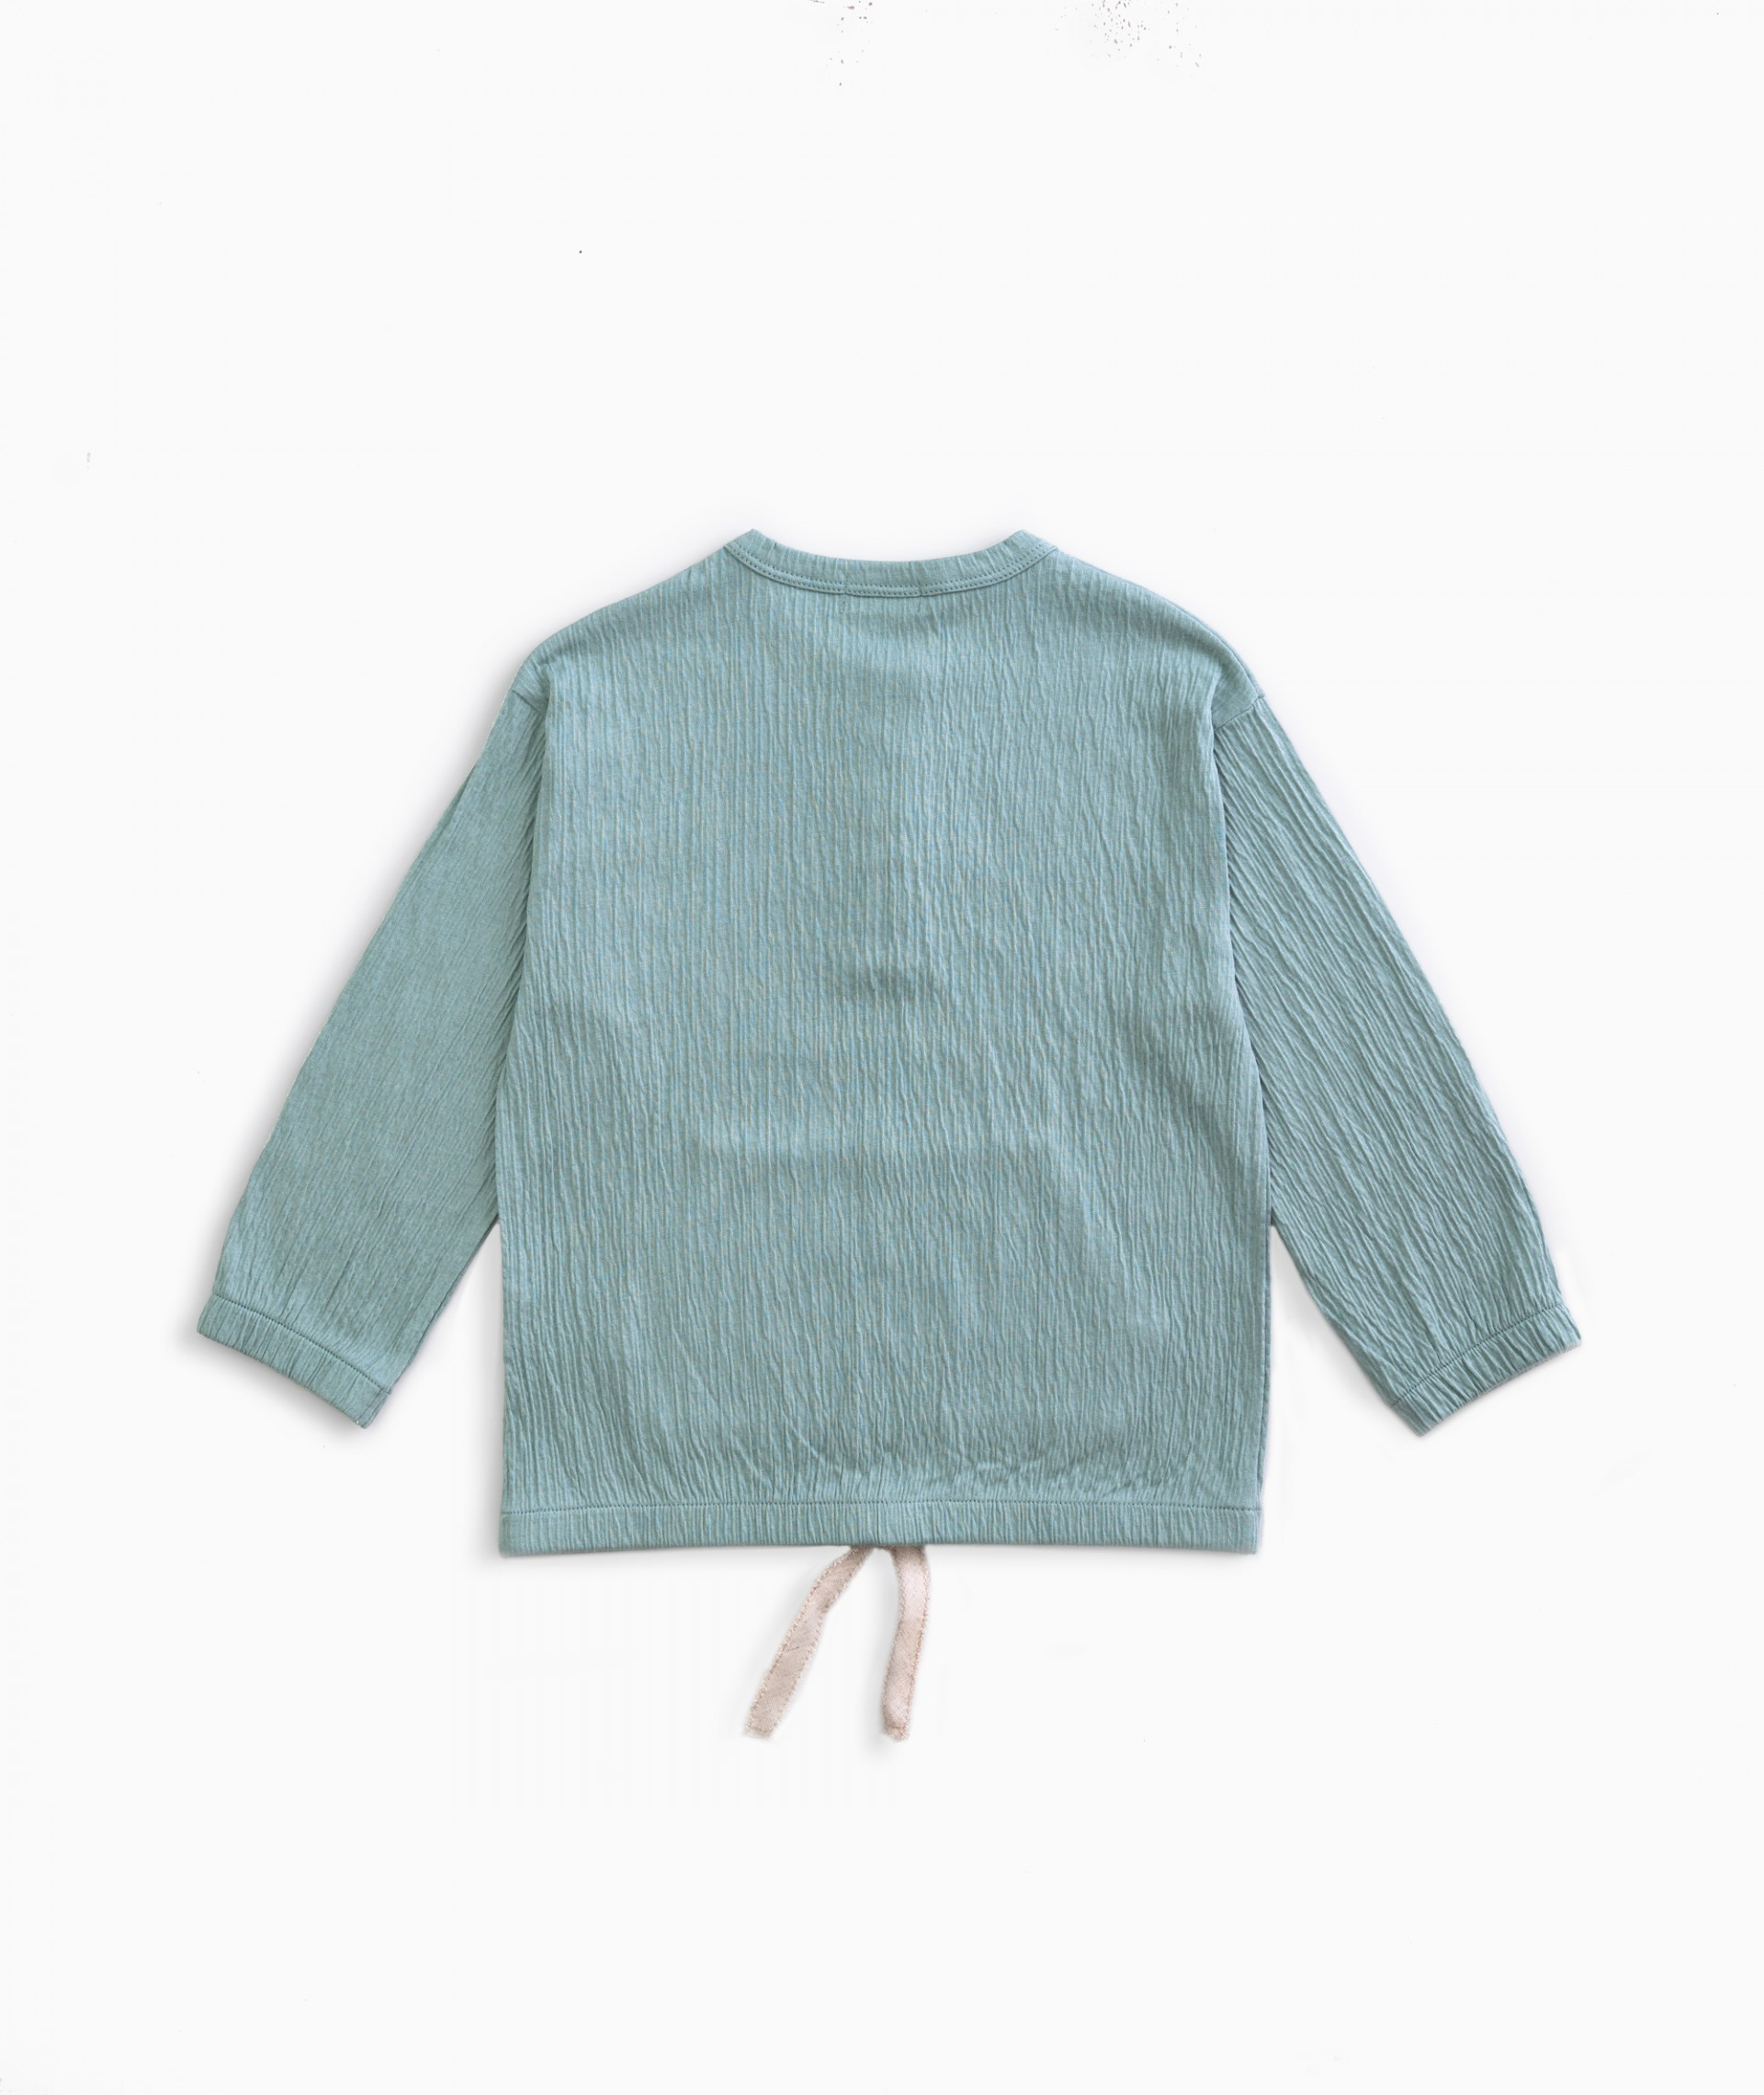 Sweater with pocket | Weaving